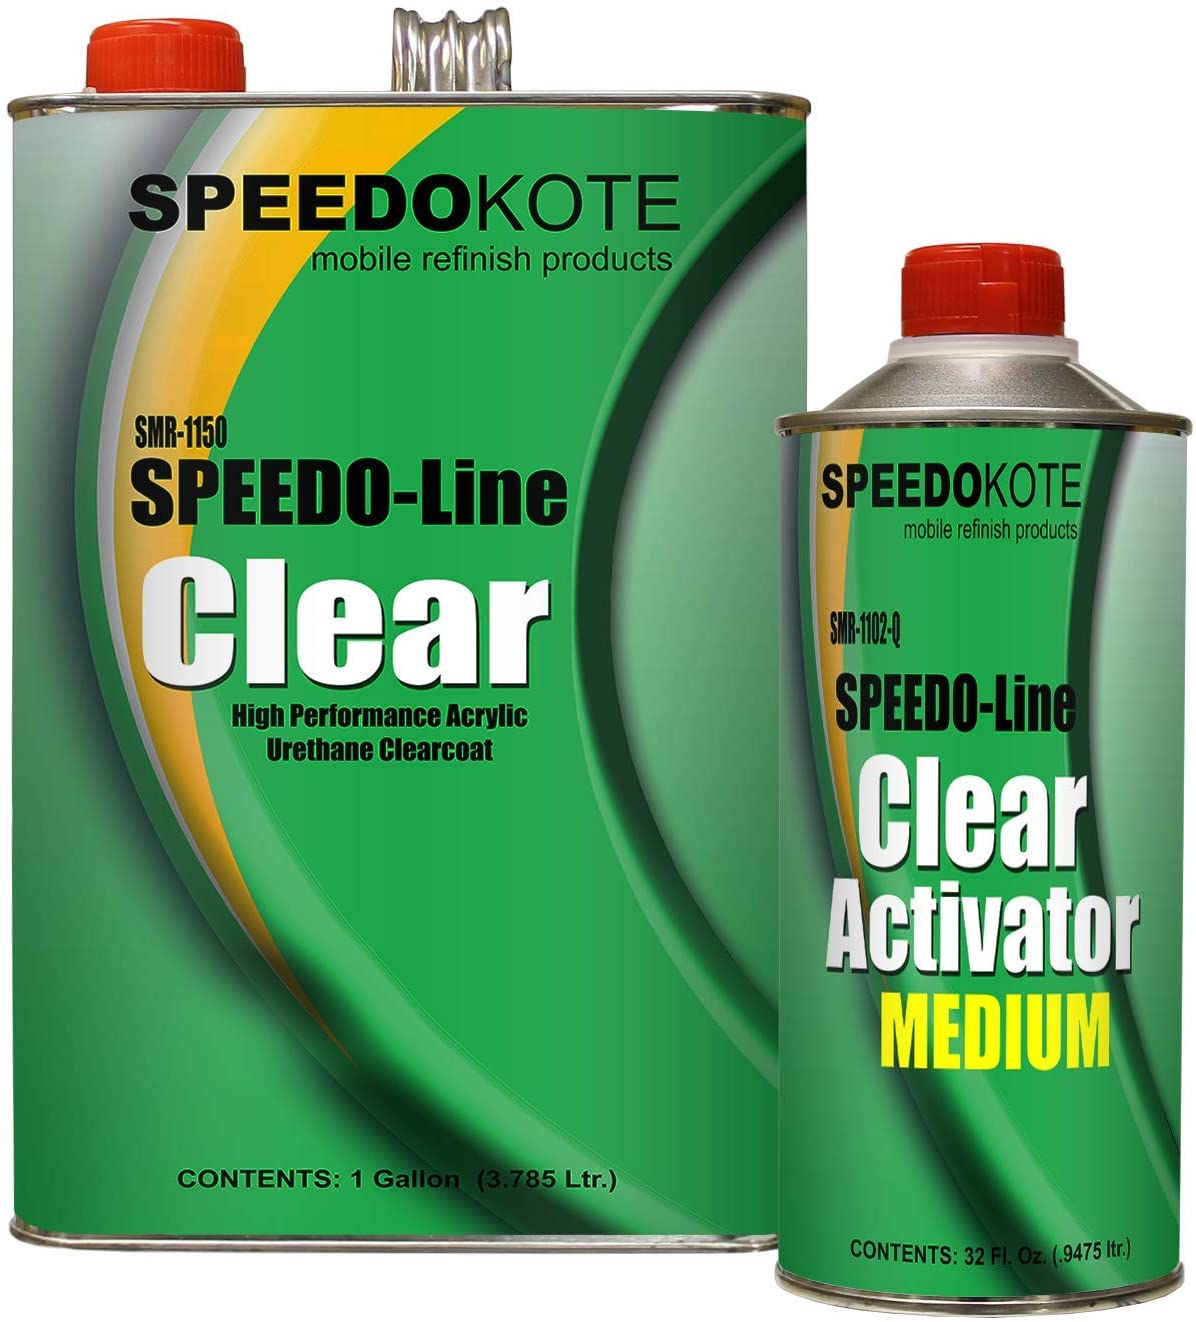 B00SX5537Y Speedokote Clear Coat 2K Acrylic Urethane, SMR-1150/1102-Q 4:1 Gallon Clearcoat Medium Kit 71ER3g-HM4L